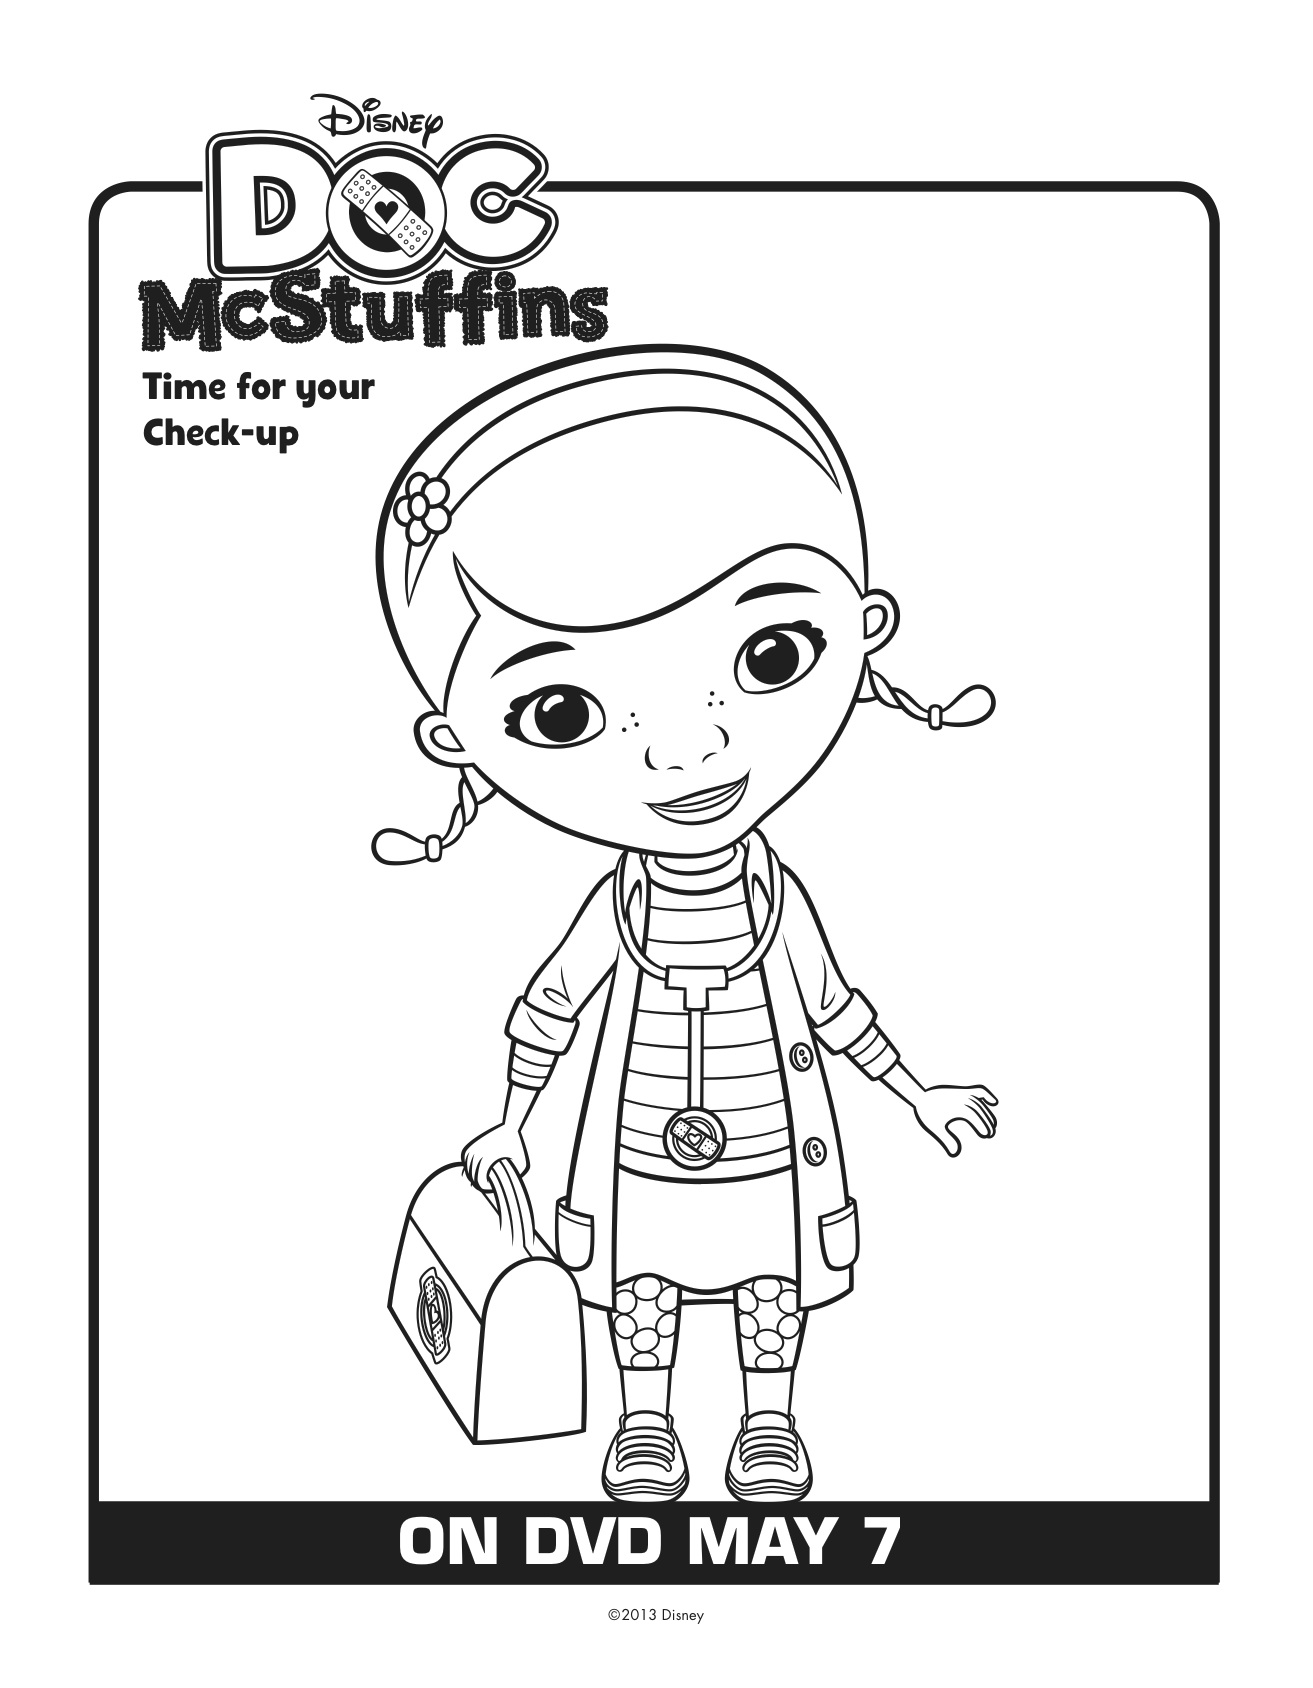 Doc mcstuffins printable clipart png free Doc mcstuffins clipart black and white - ClipartFest png free